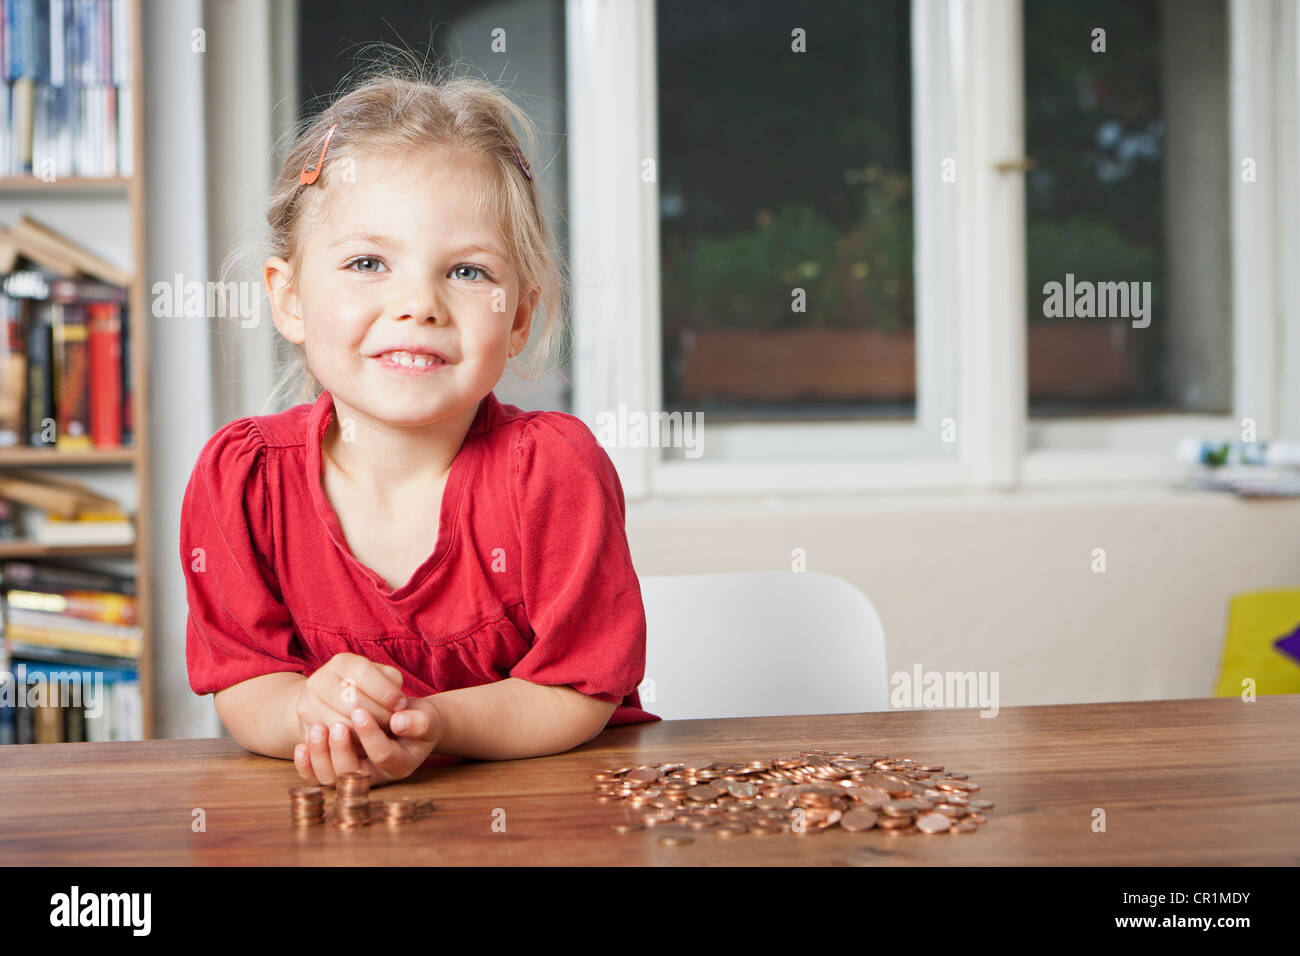 Girl playing with pennies at table - Stock Image